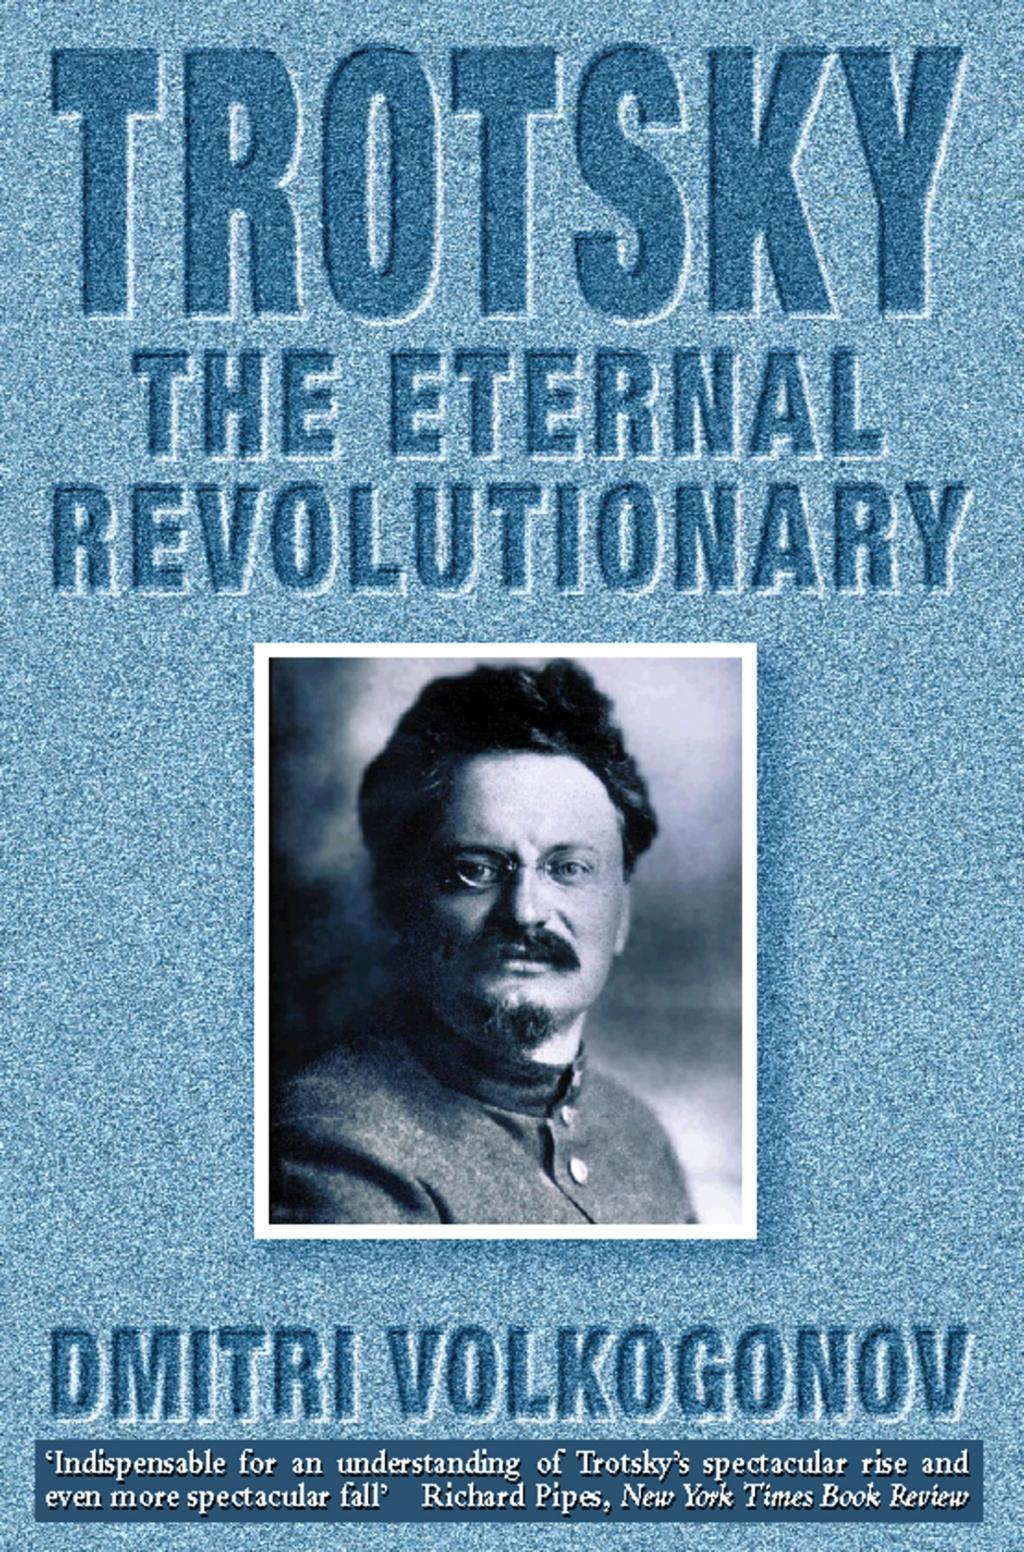 Trotsky: The Eternal Revolutionary (Text Only)